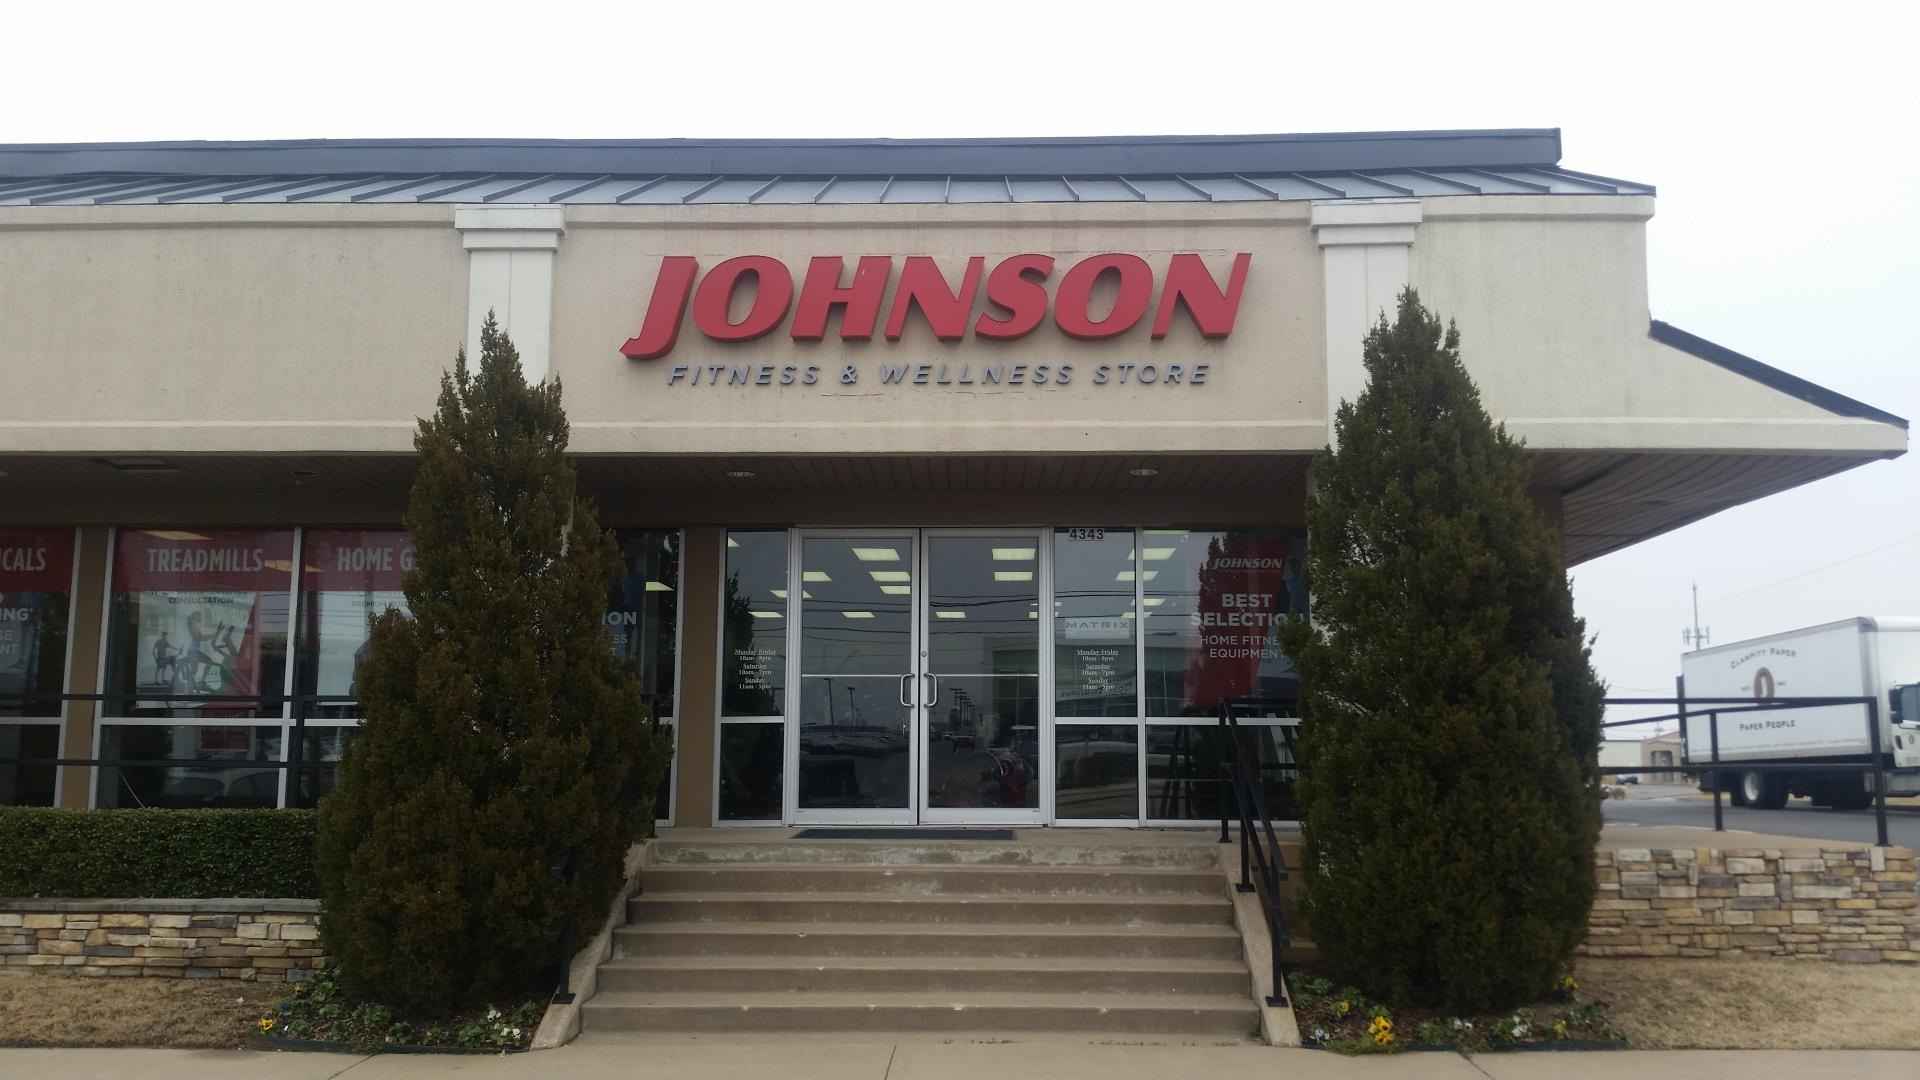 Johnson Fitness & Wellness - Tulsa, OK